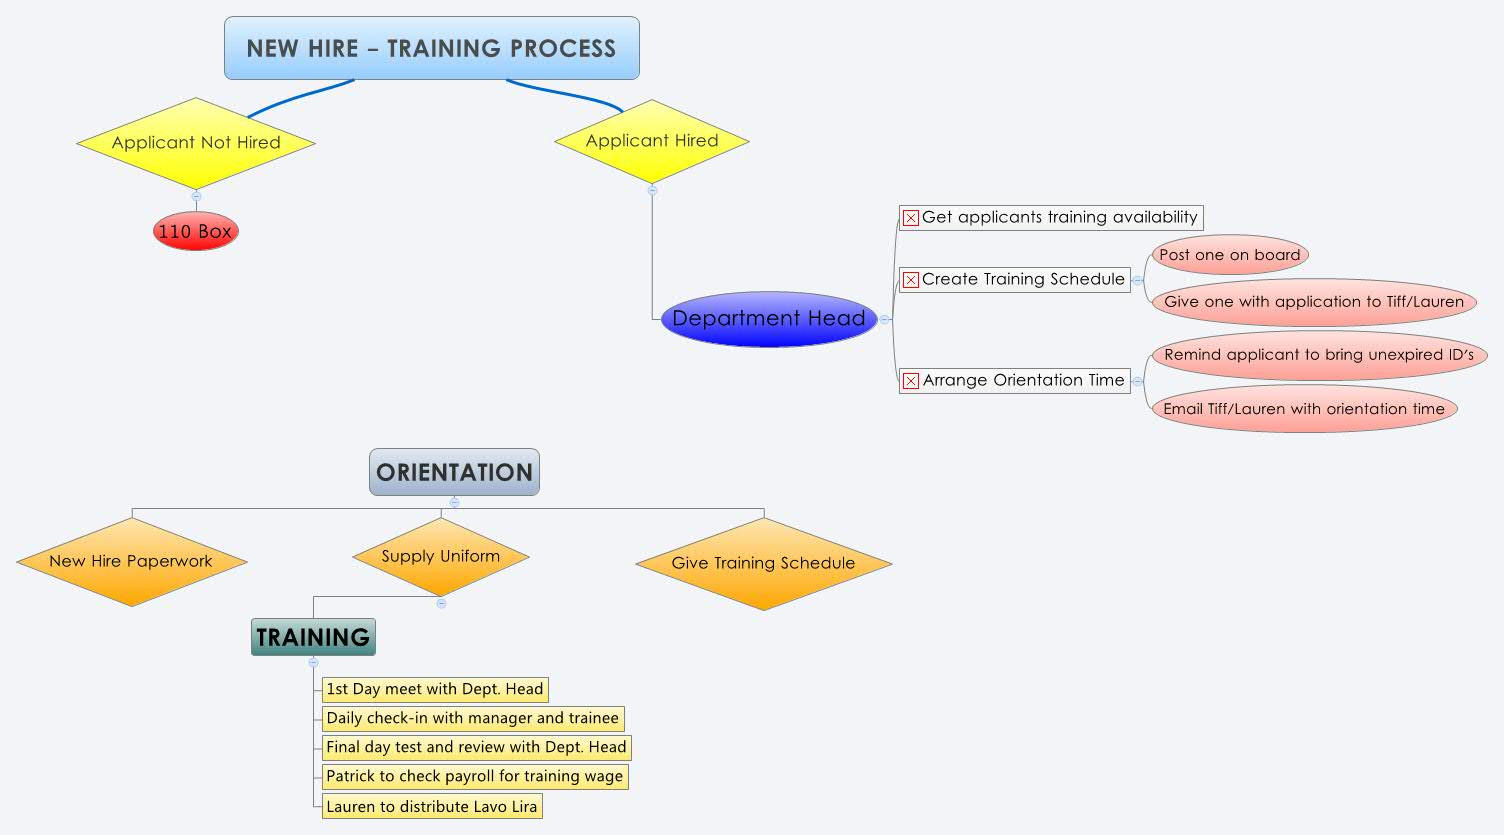 New hire training process